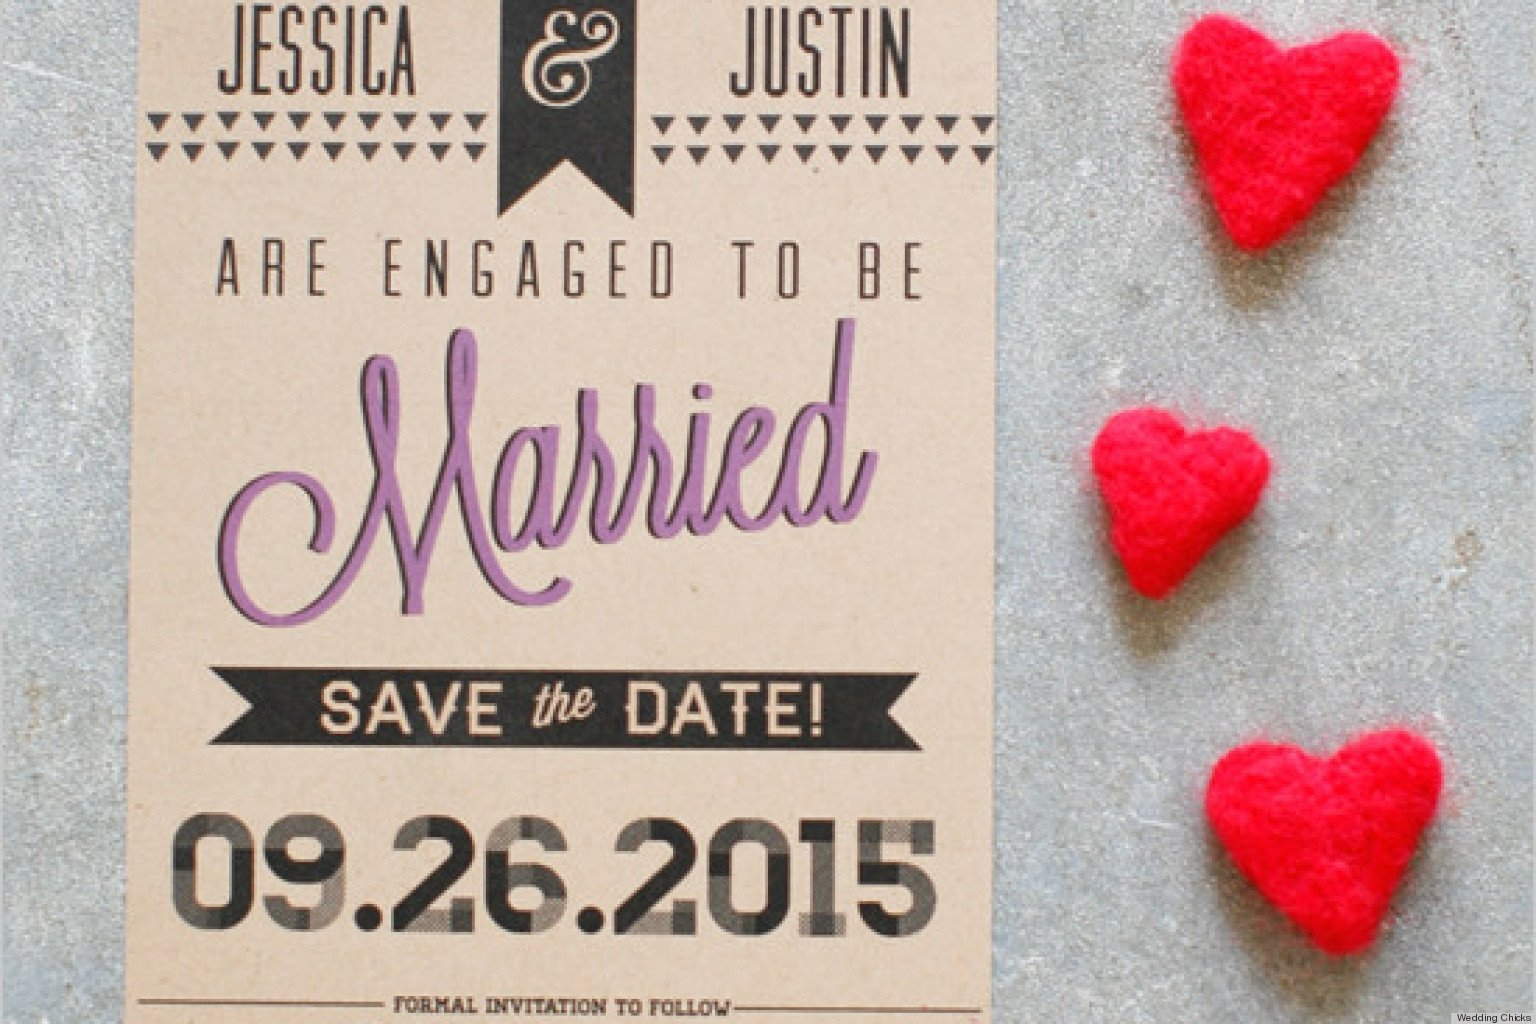 10 Most Recommended Save The Date Ideas Wedding 12 free printable save the date cards stylish enough for your 1 2020